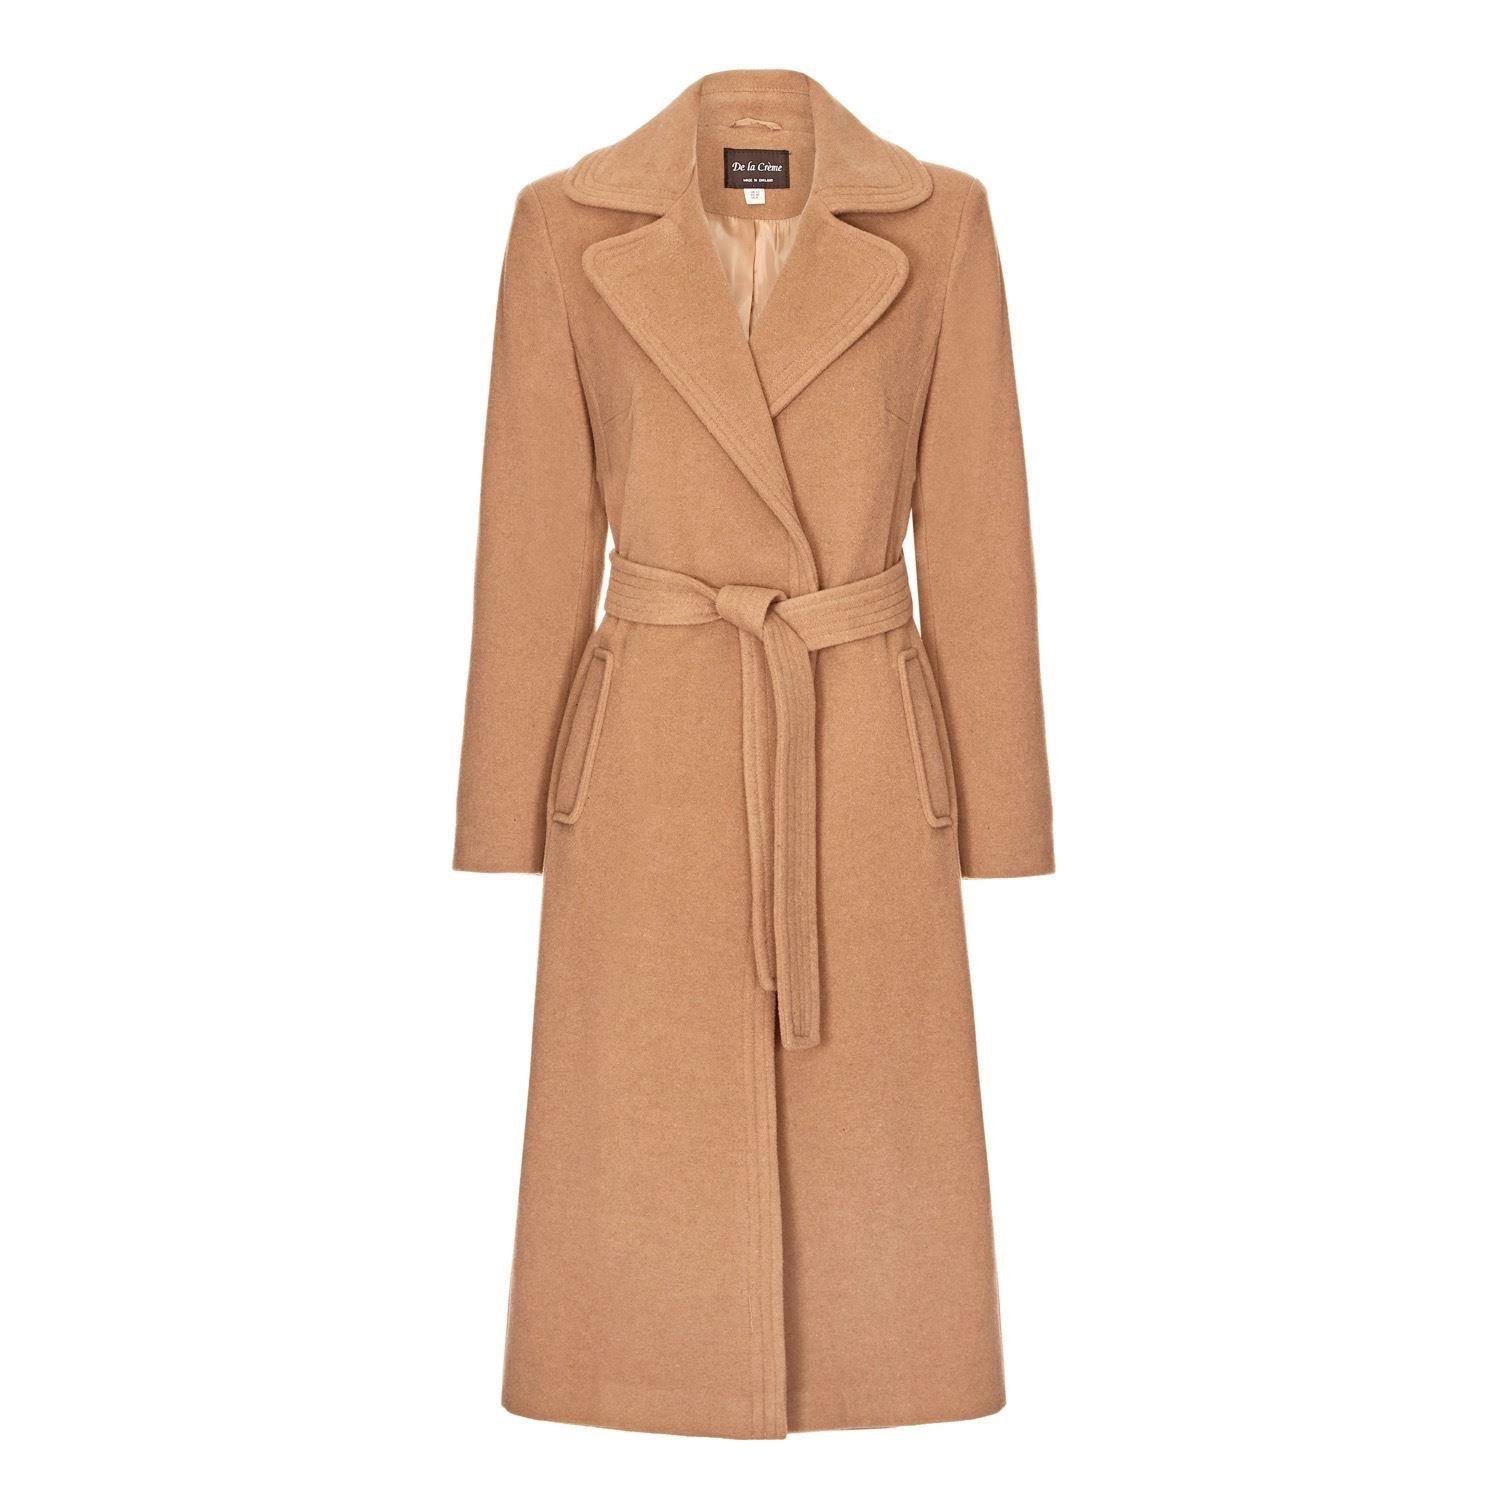 Anastasia Womens Wool Cashmere Winter Belted Wrap Coat